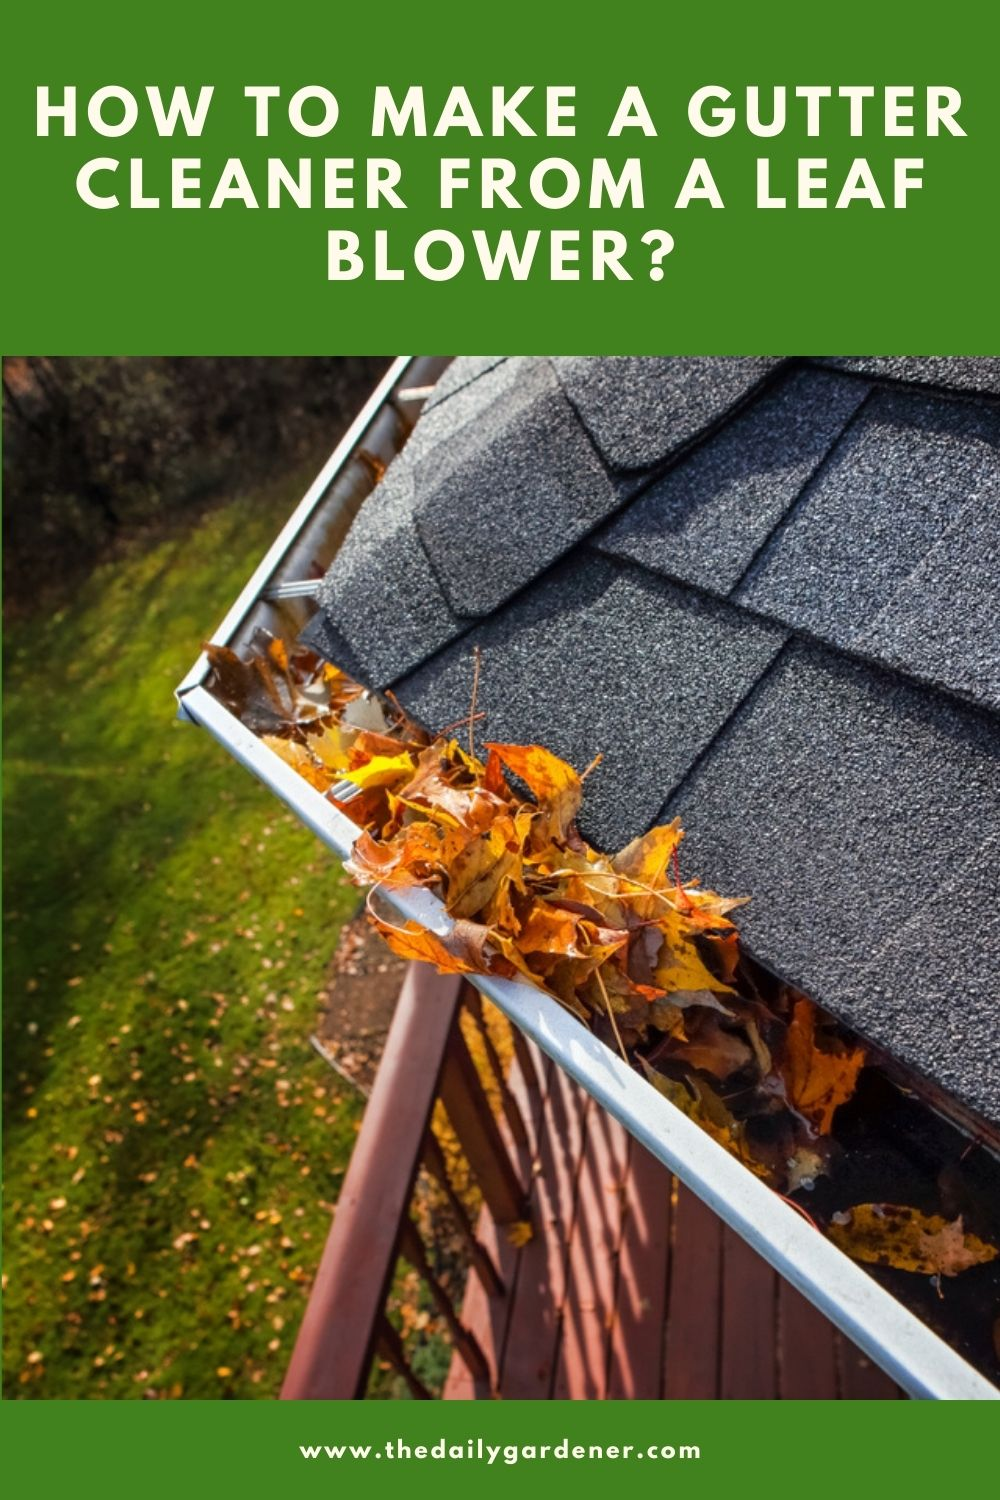 How to Make a Gutter Cleaner from a Leaf Blower 1